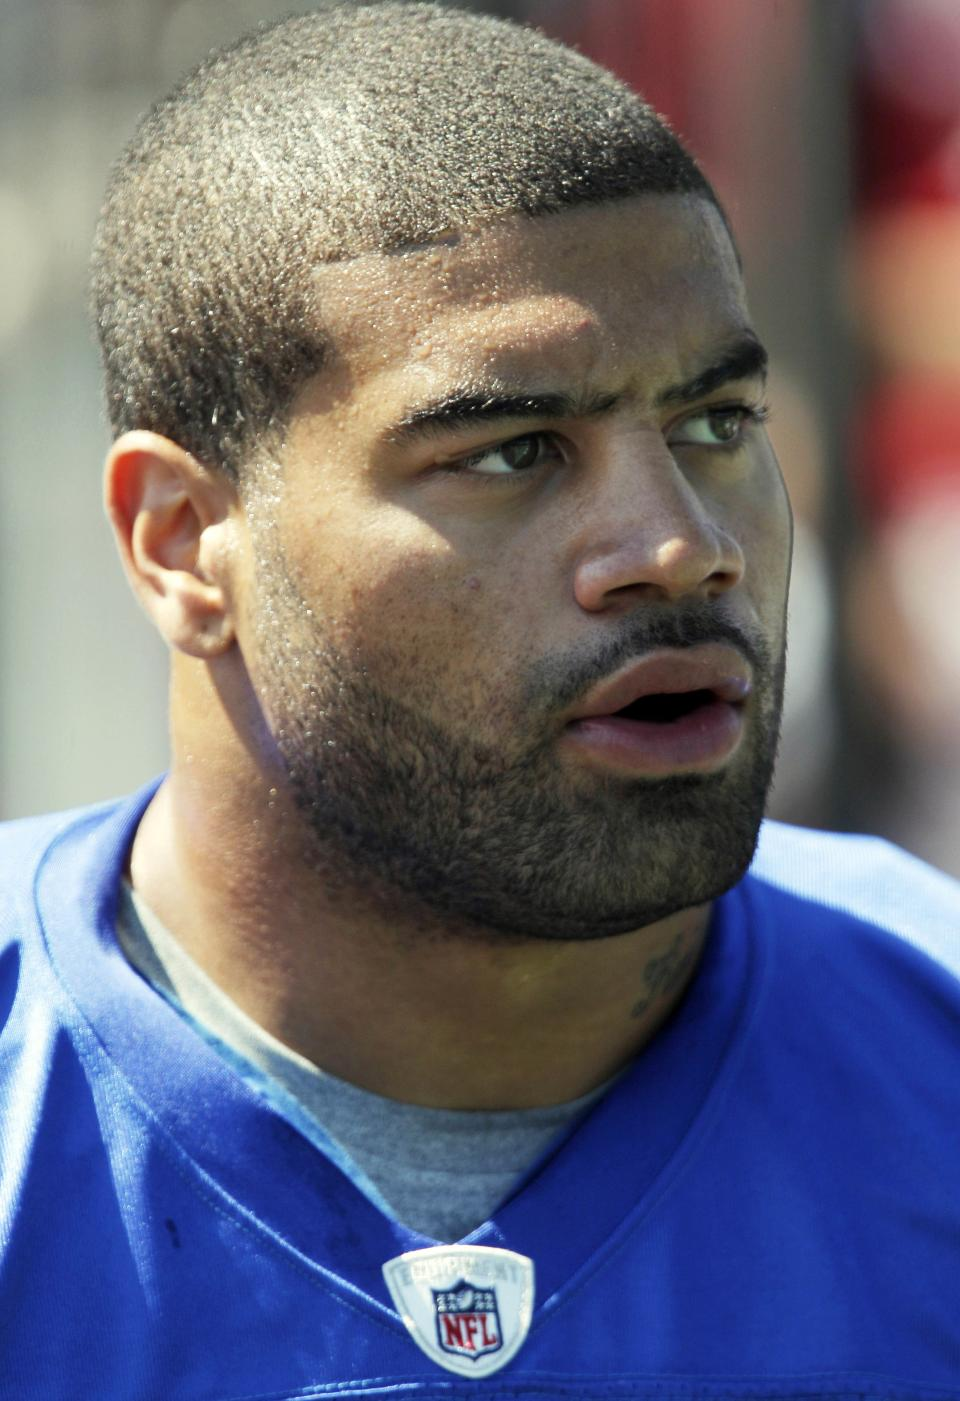 Buffalo Bills' Shawne Merriman looks on during NFL football training camp in Pittsford, N.Y., Saturday, July 30, 2011. (AP Photo/David Duprey)